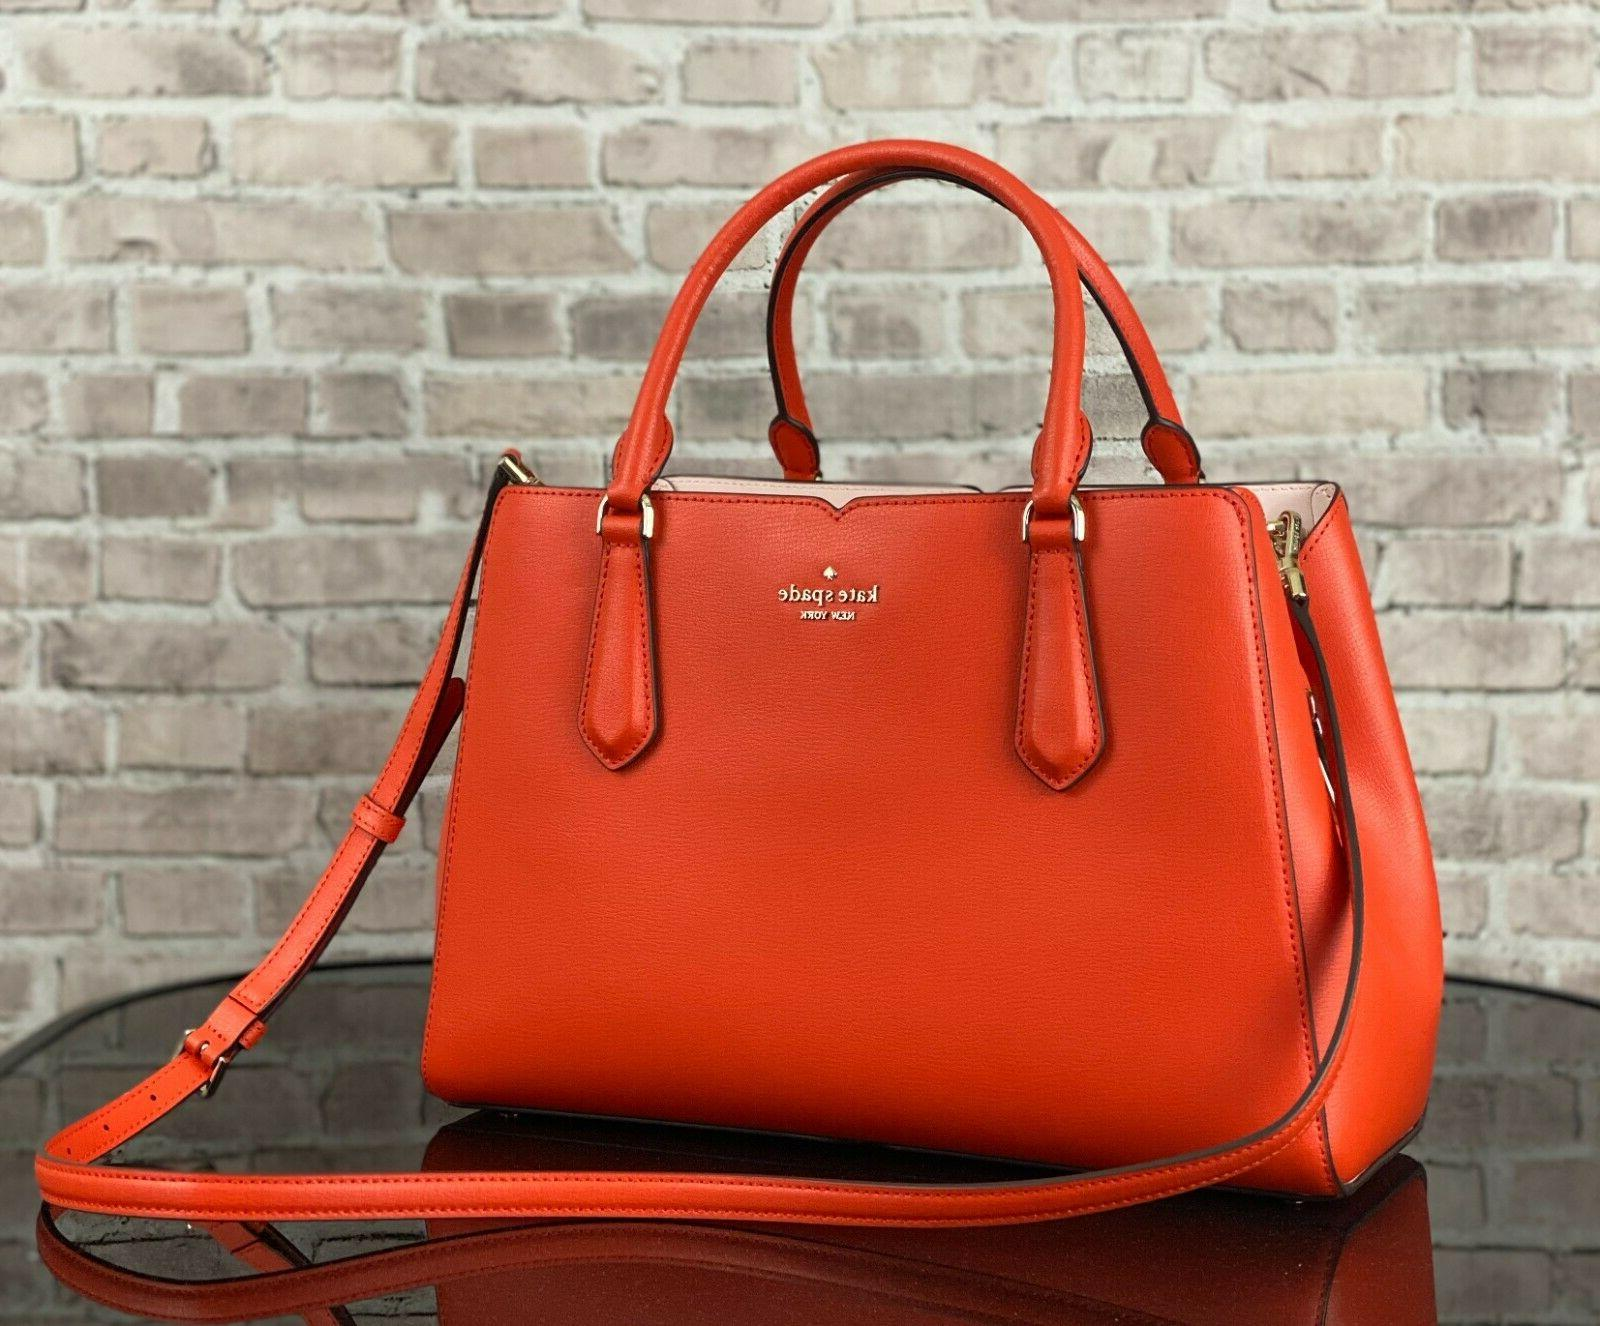 KATE SPADE TIPPY MEDIUM TRIPLE COMPARTMENT SATCHEL CROSSBODY